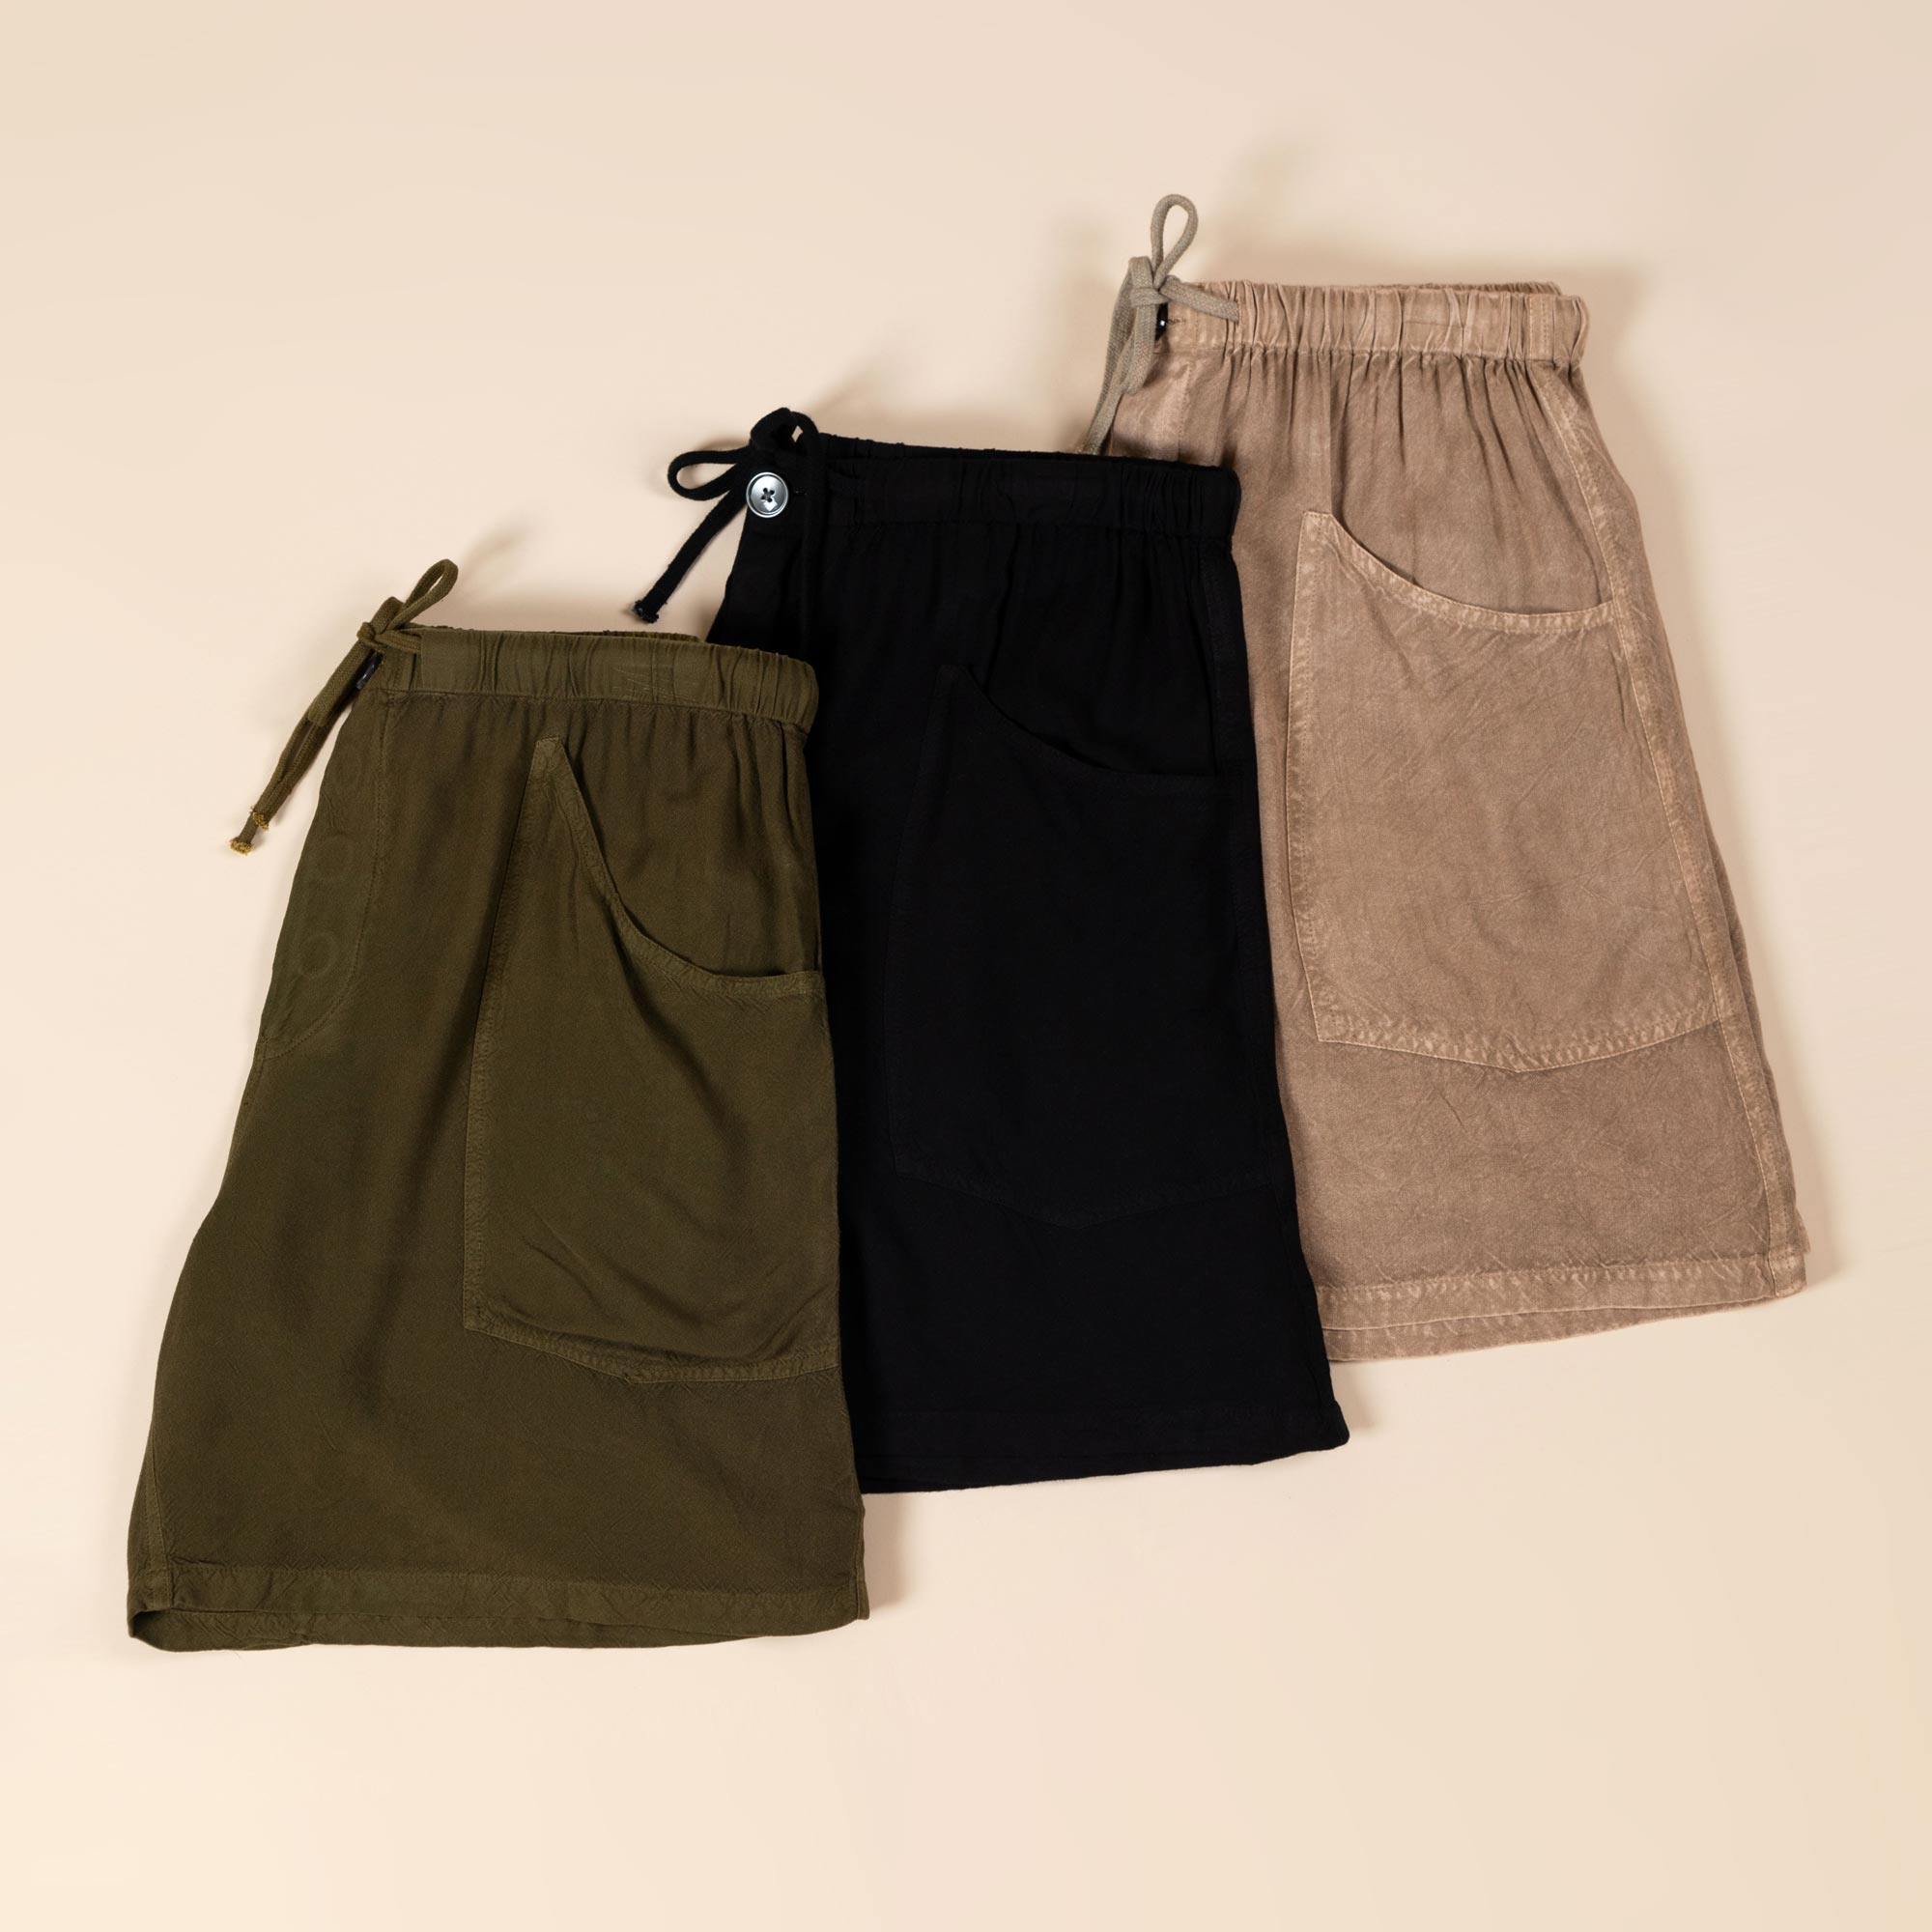 Three pair of solid-colored earth tone shorts